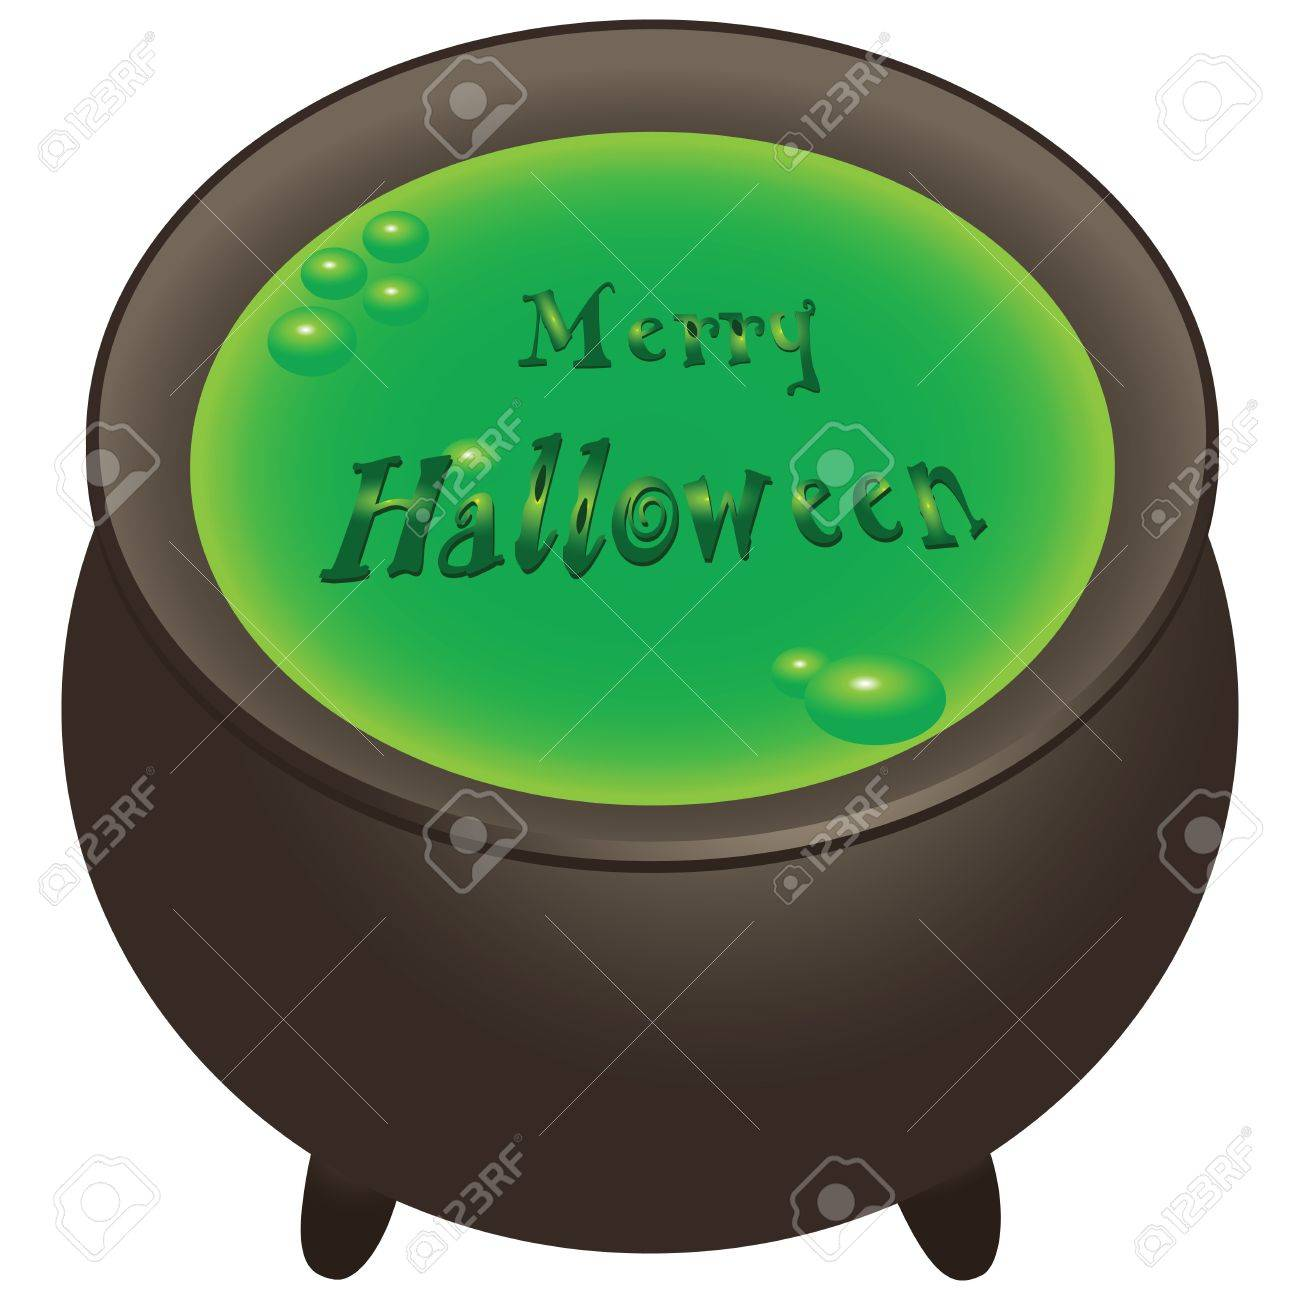 Preparation of magical ingredients in the pot. Merry Halloween. Vector illustration. Stock Vector - 18953602